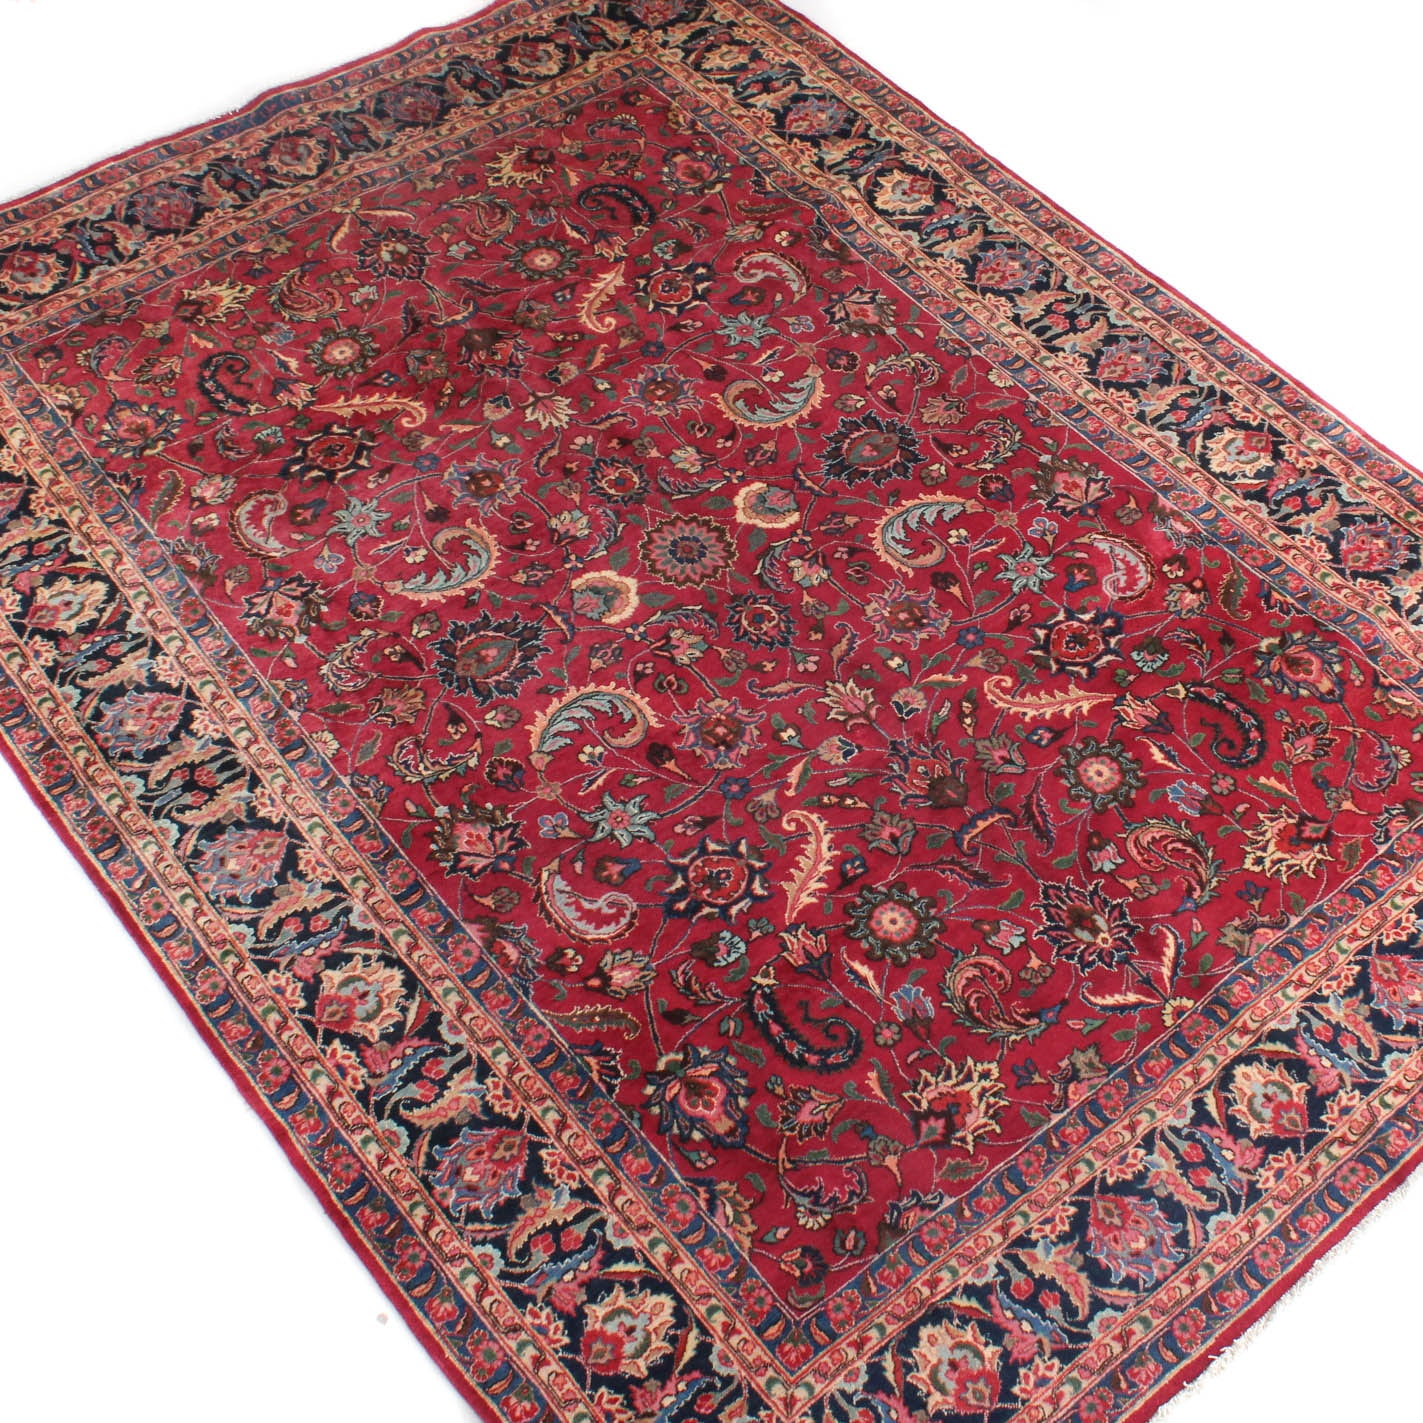 8' x 11' Signed Fine Hand-Knotted Persian Mashhad Rug